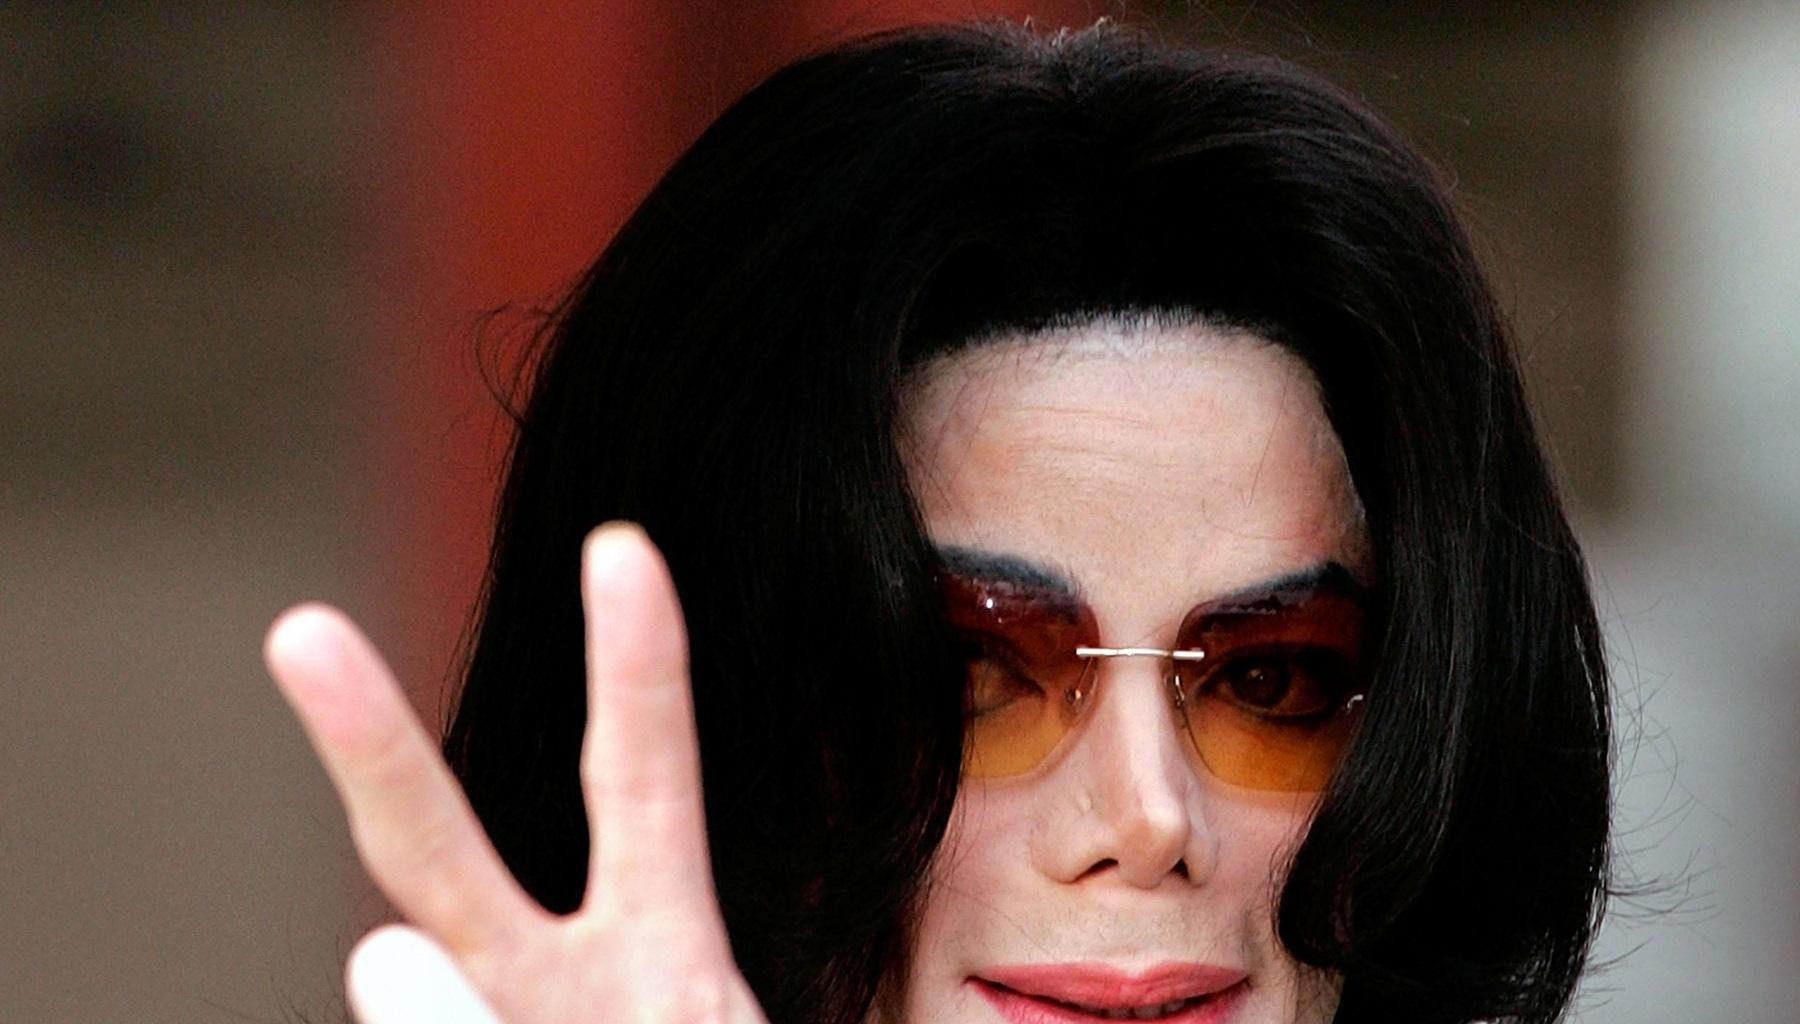 Michael Jackson Hit With New Rumors -- Some Are Weird And Others Positive